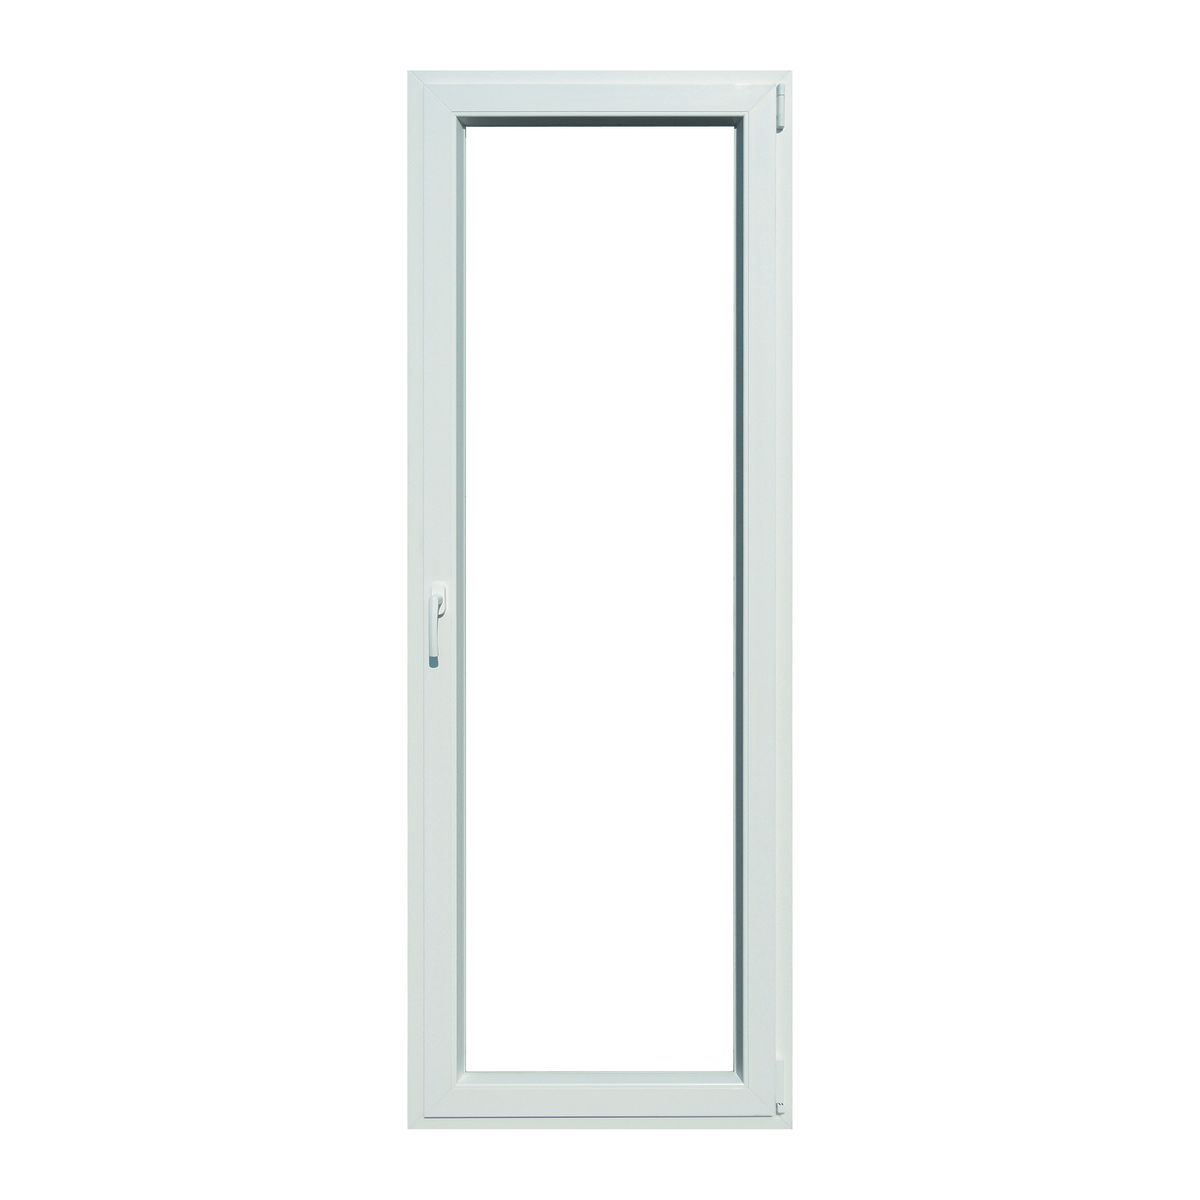 Porte in pvc per esterni prezzi with porte in pvc per for Finestra scorrevole leroy merlin